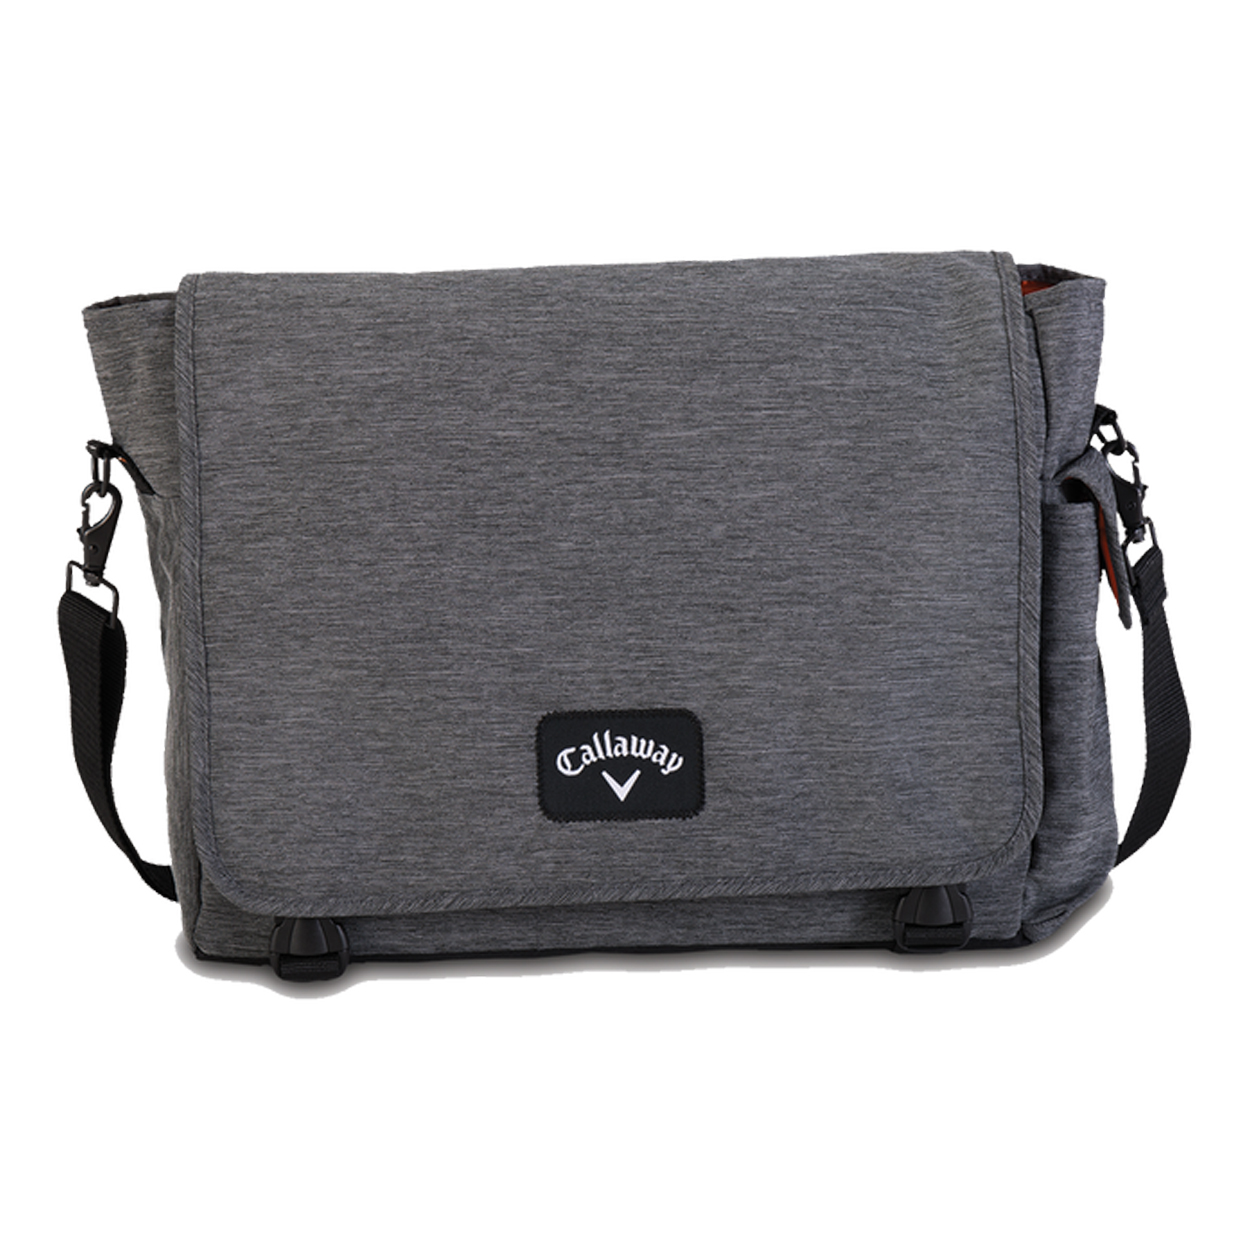 Callaway Clubhouse Collection Messenger Bag